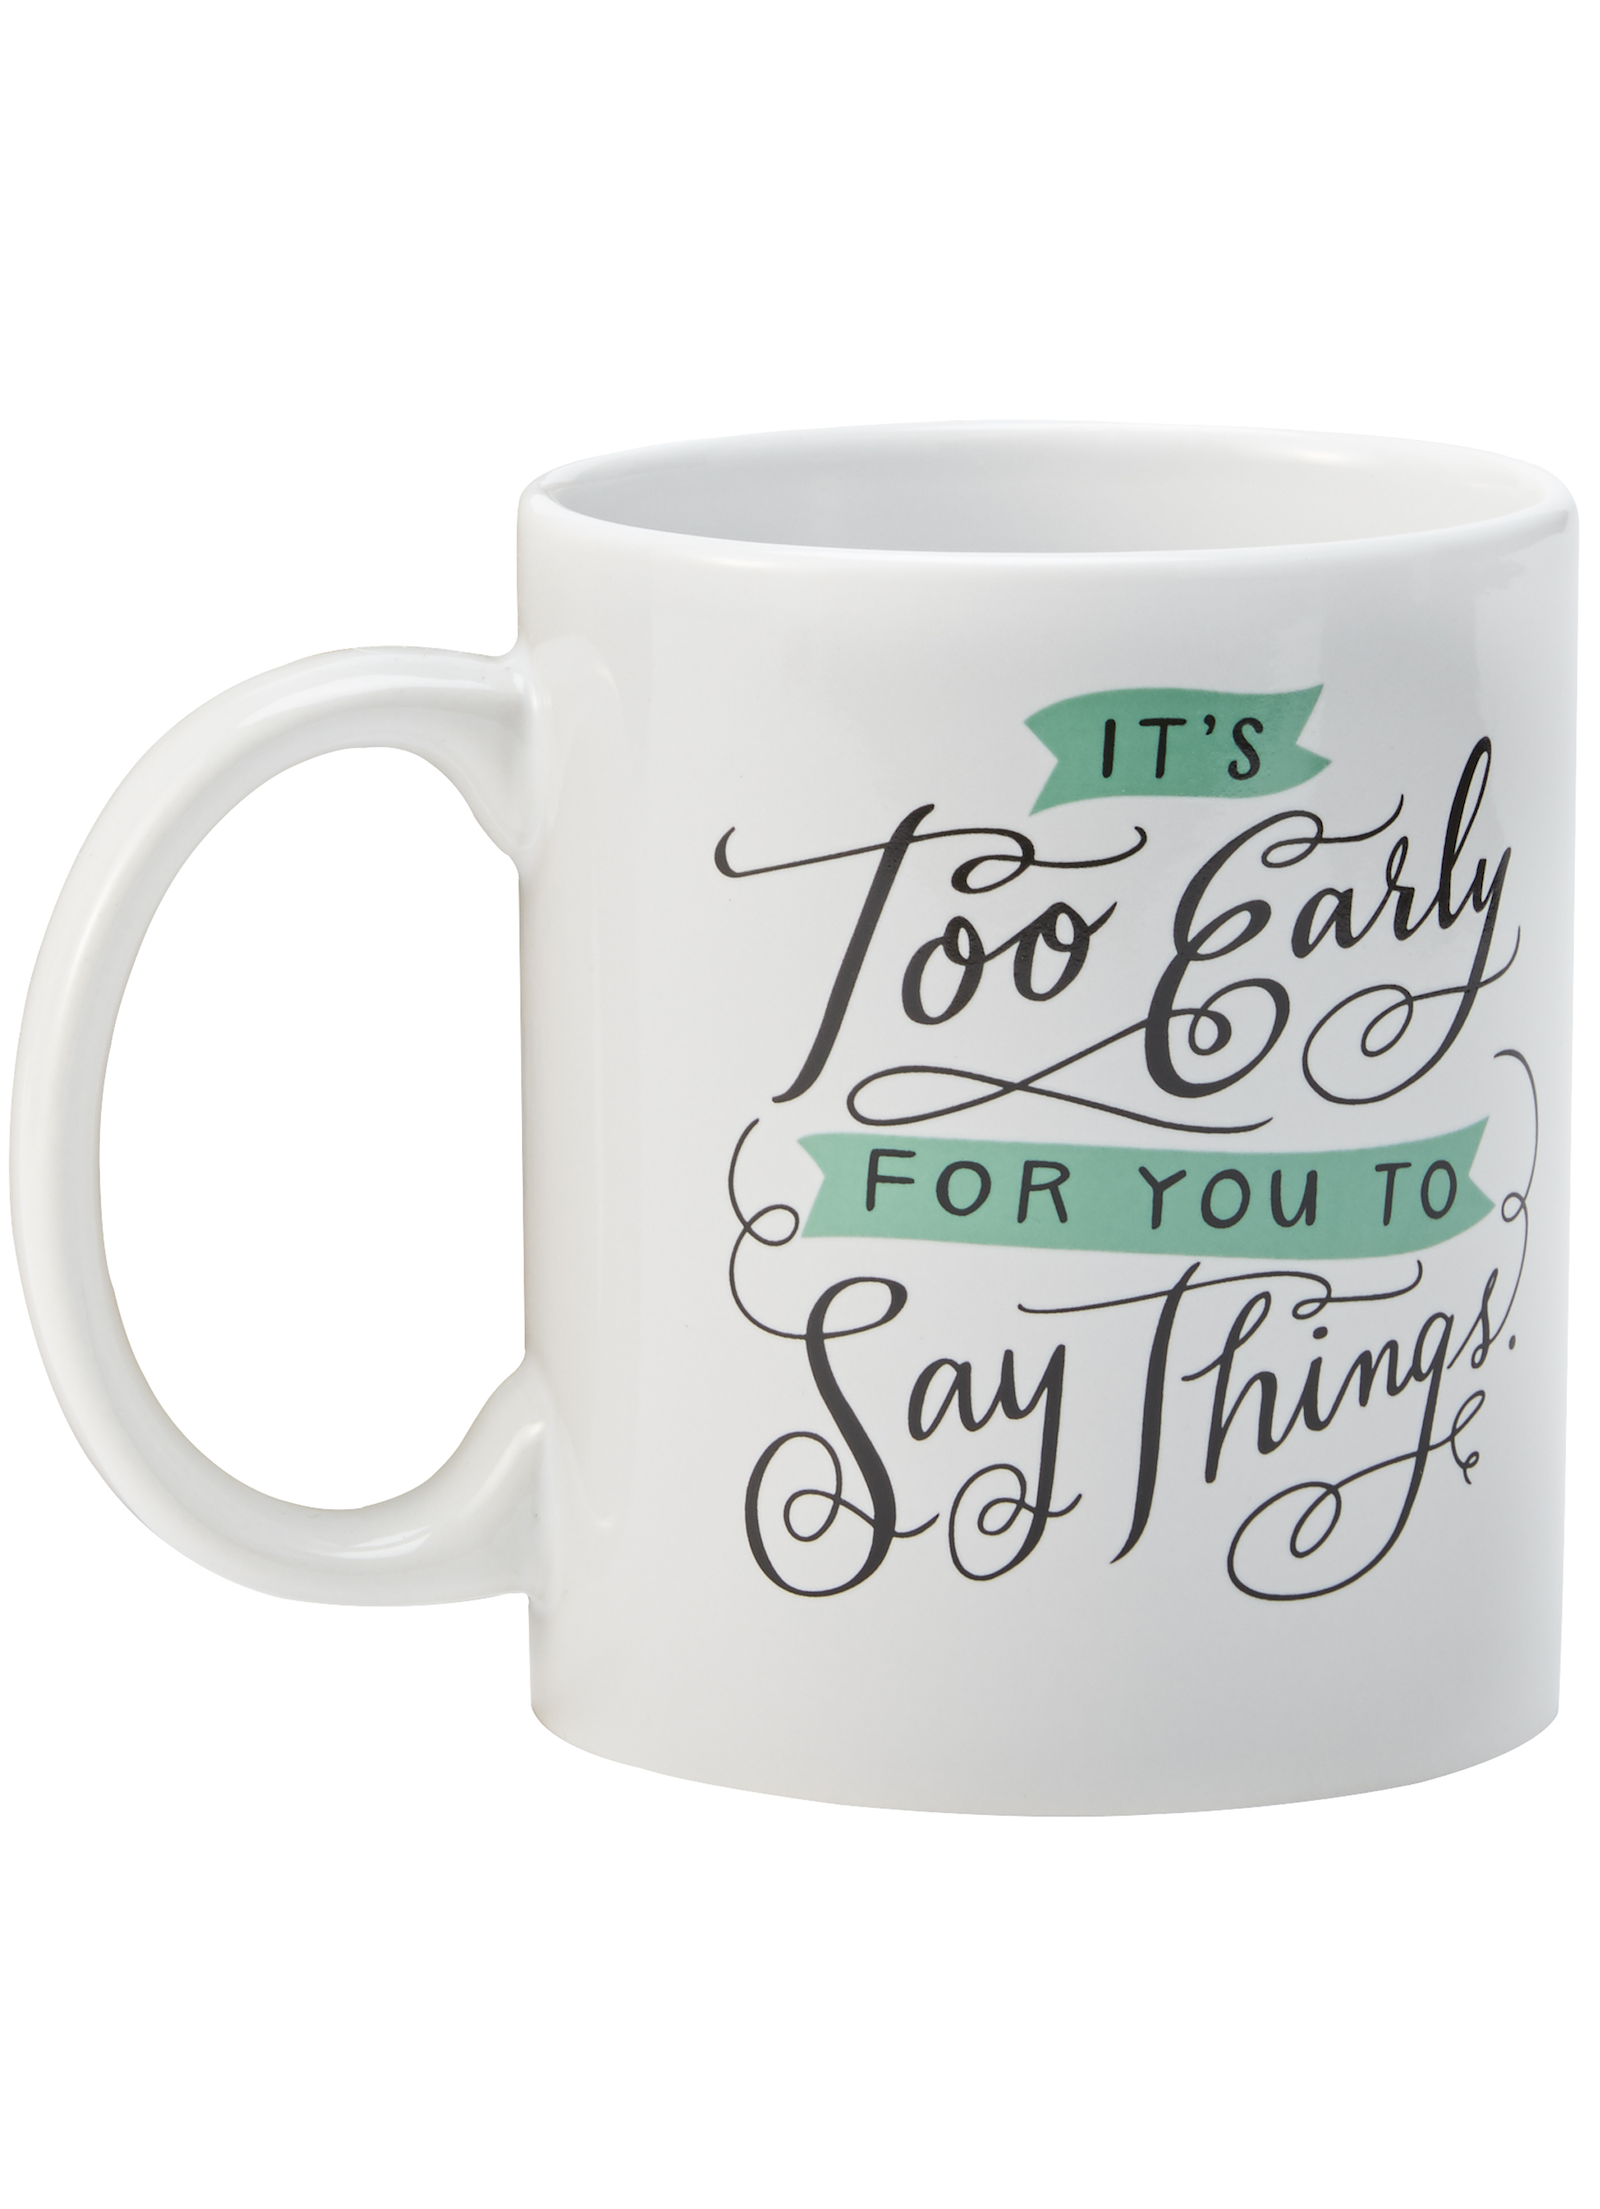 Too You Coffee Things Gifts Say MugAll It's To Early Ceramic For rhdxtQsC